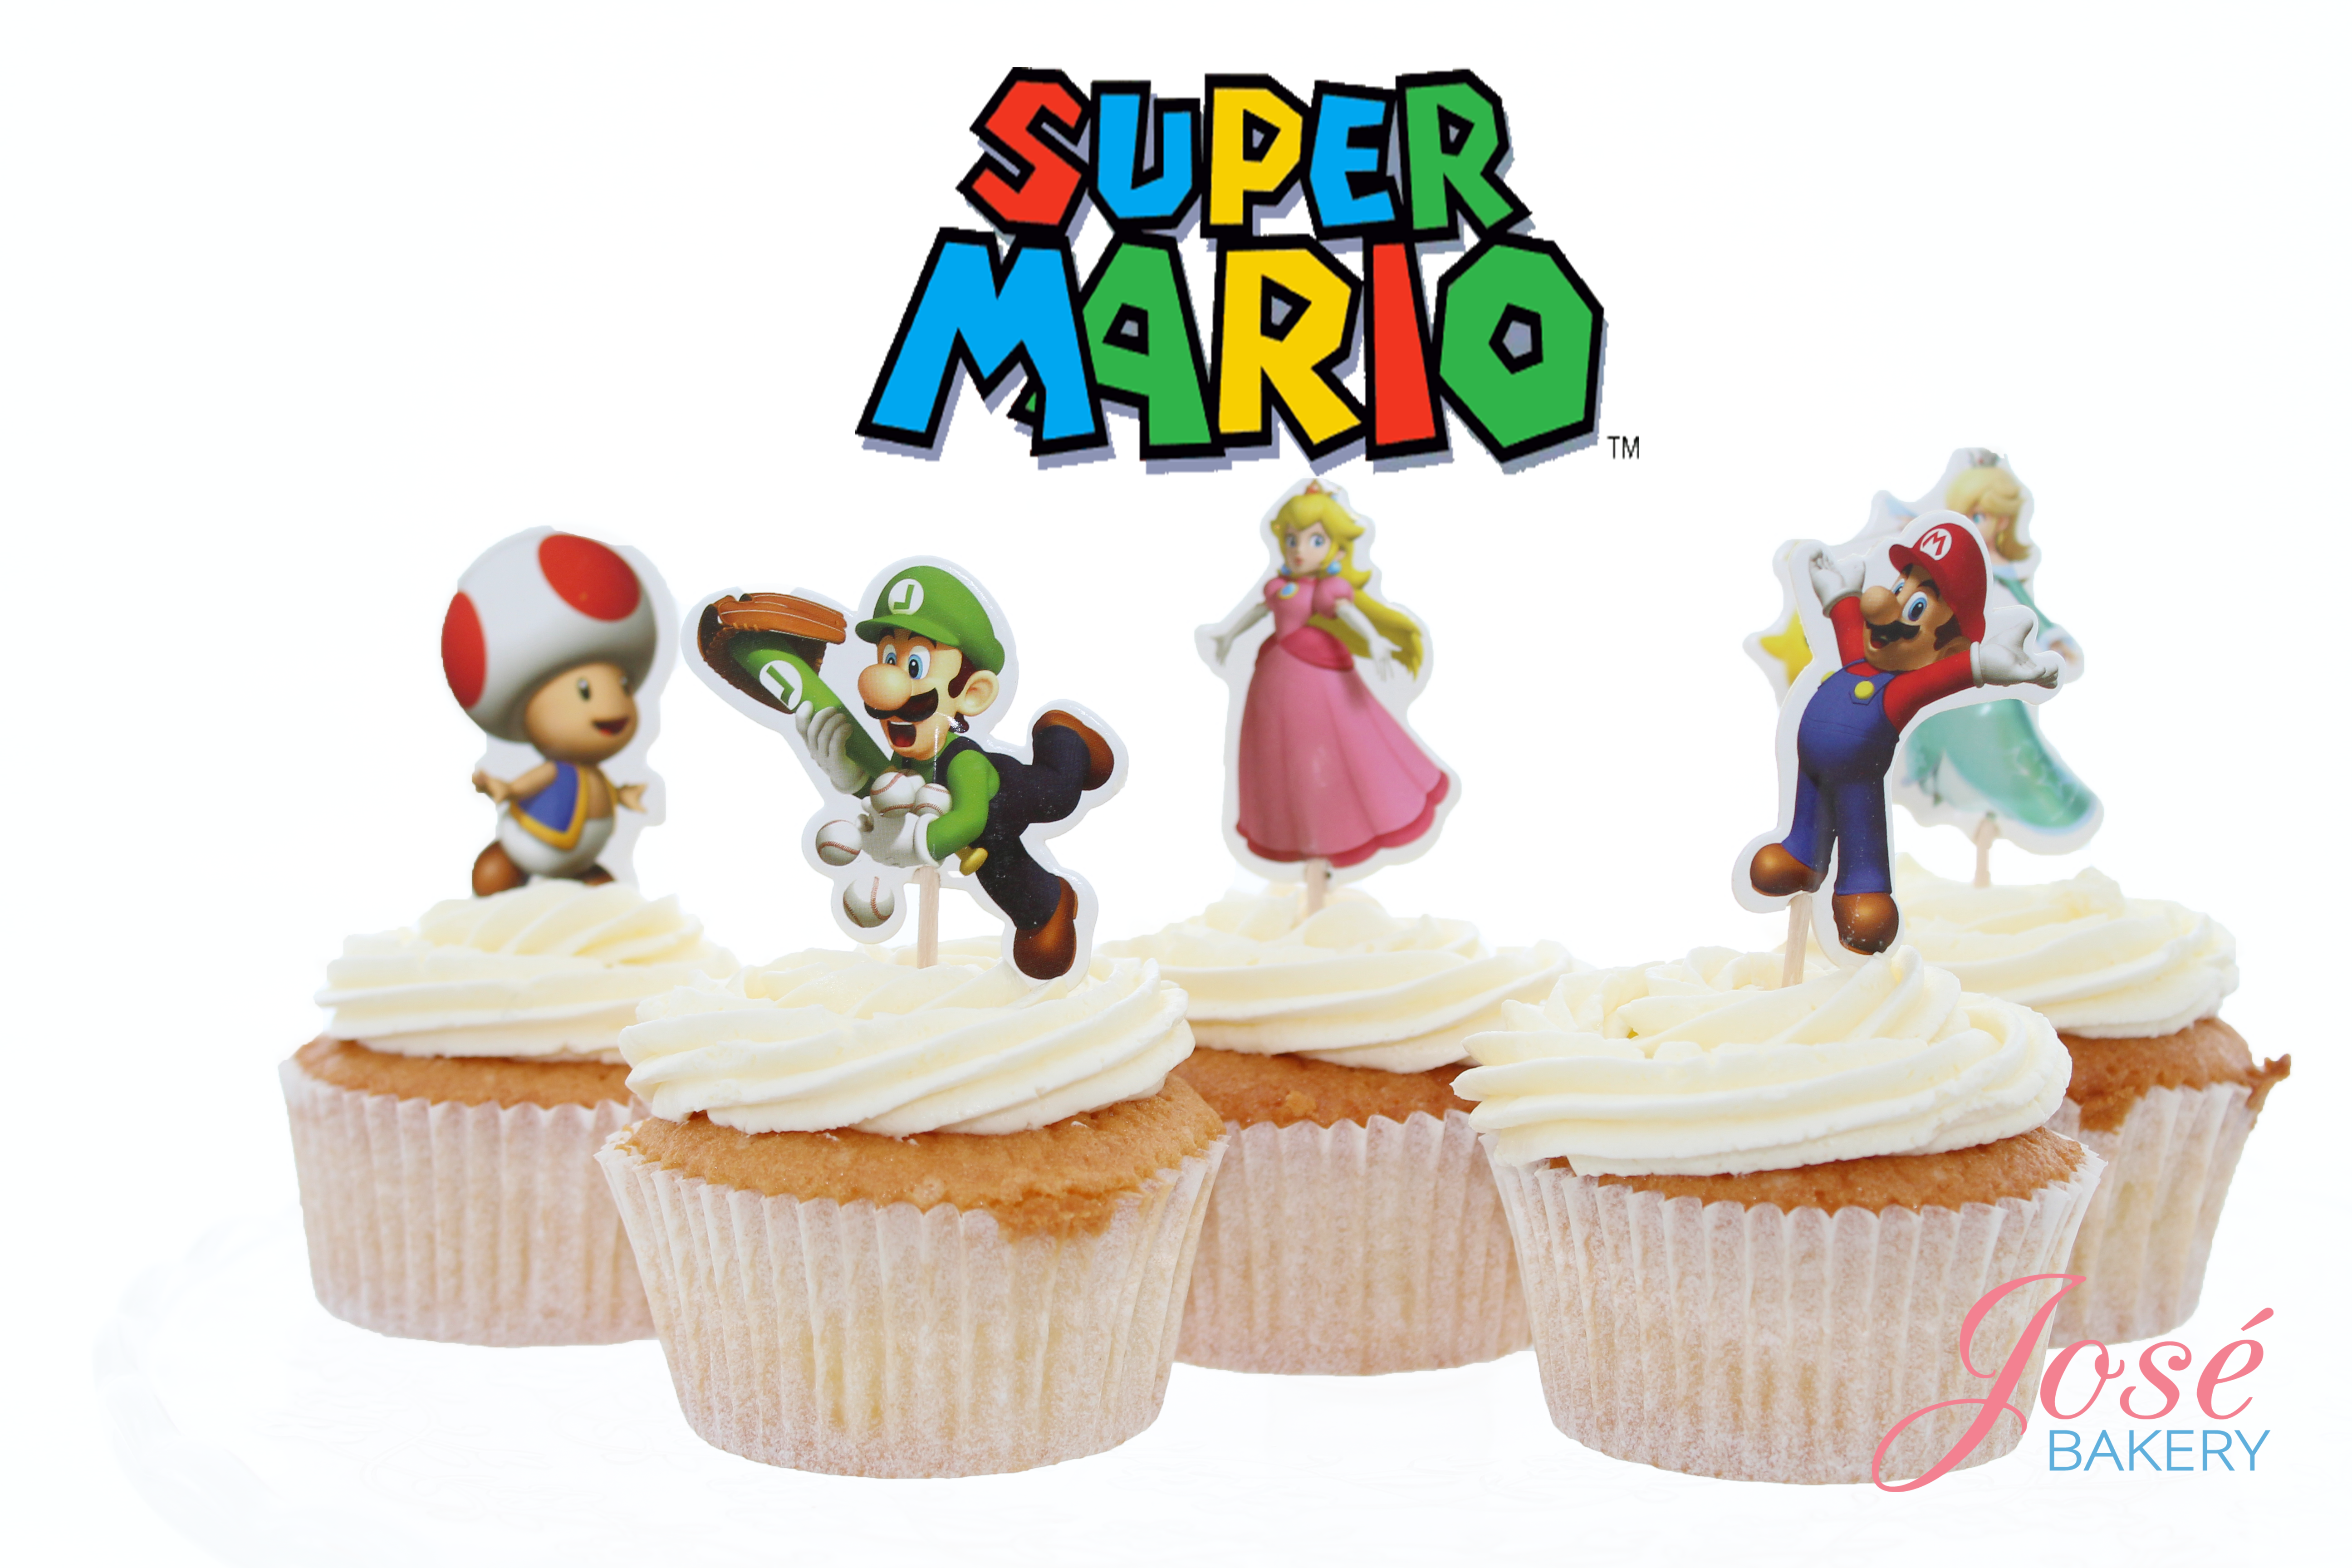 Supermario cupcake toppers